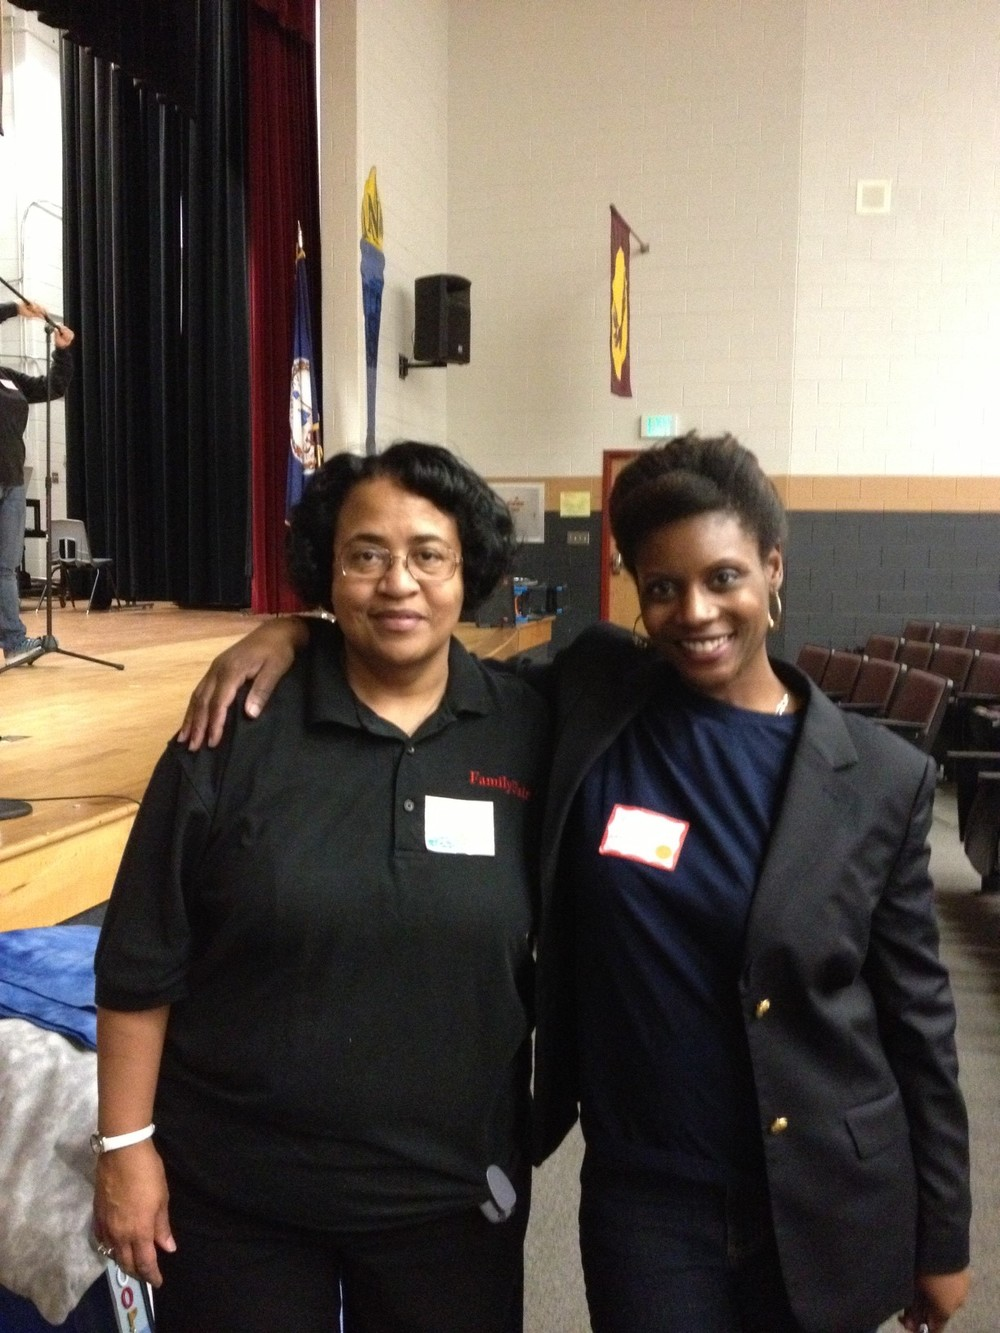 Caroline County Middle School 9th Annual Family Fair on 031613 Mrs Jessie Rollins and I.jpg